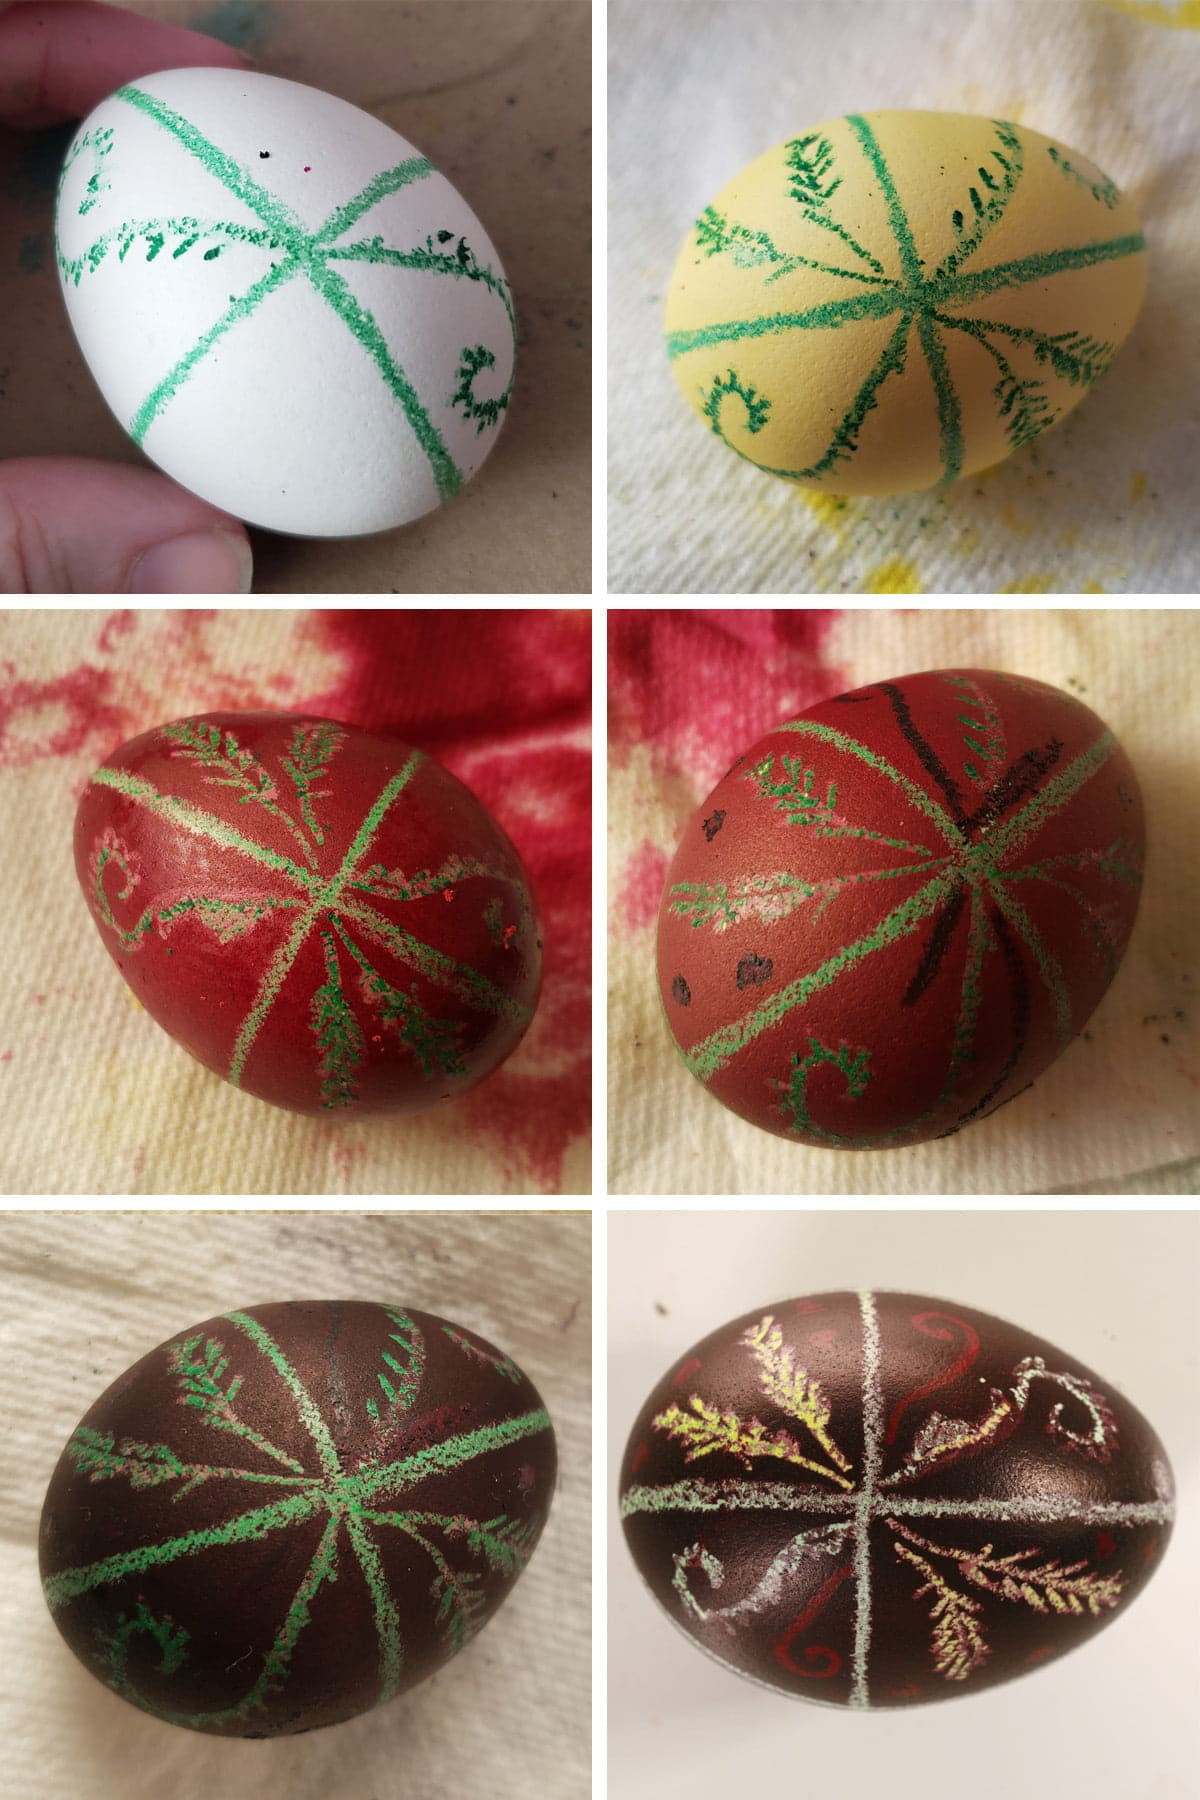 A 6 part compilation image showing a progression of a Pysanky dyed egg. It started out as a white egg with a blue design drawn onto it in crayon, all the way through to being a black egg with white, red, and yellow design.